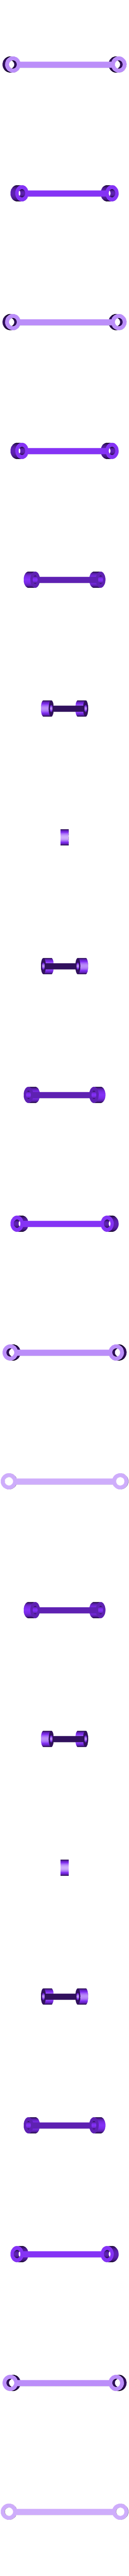 spacer68.stl Download free STL file Clock One • Template to 3D print, JacquesFavre